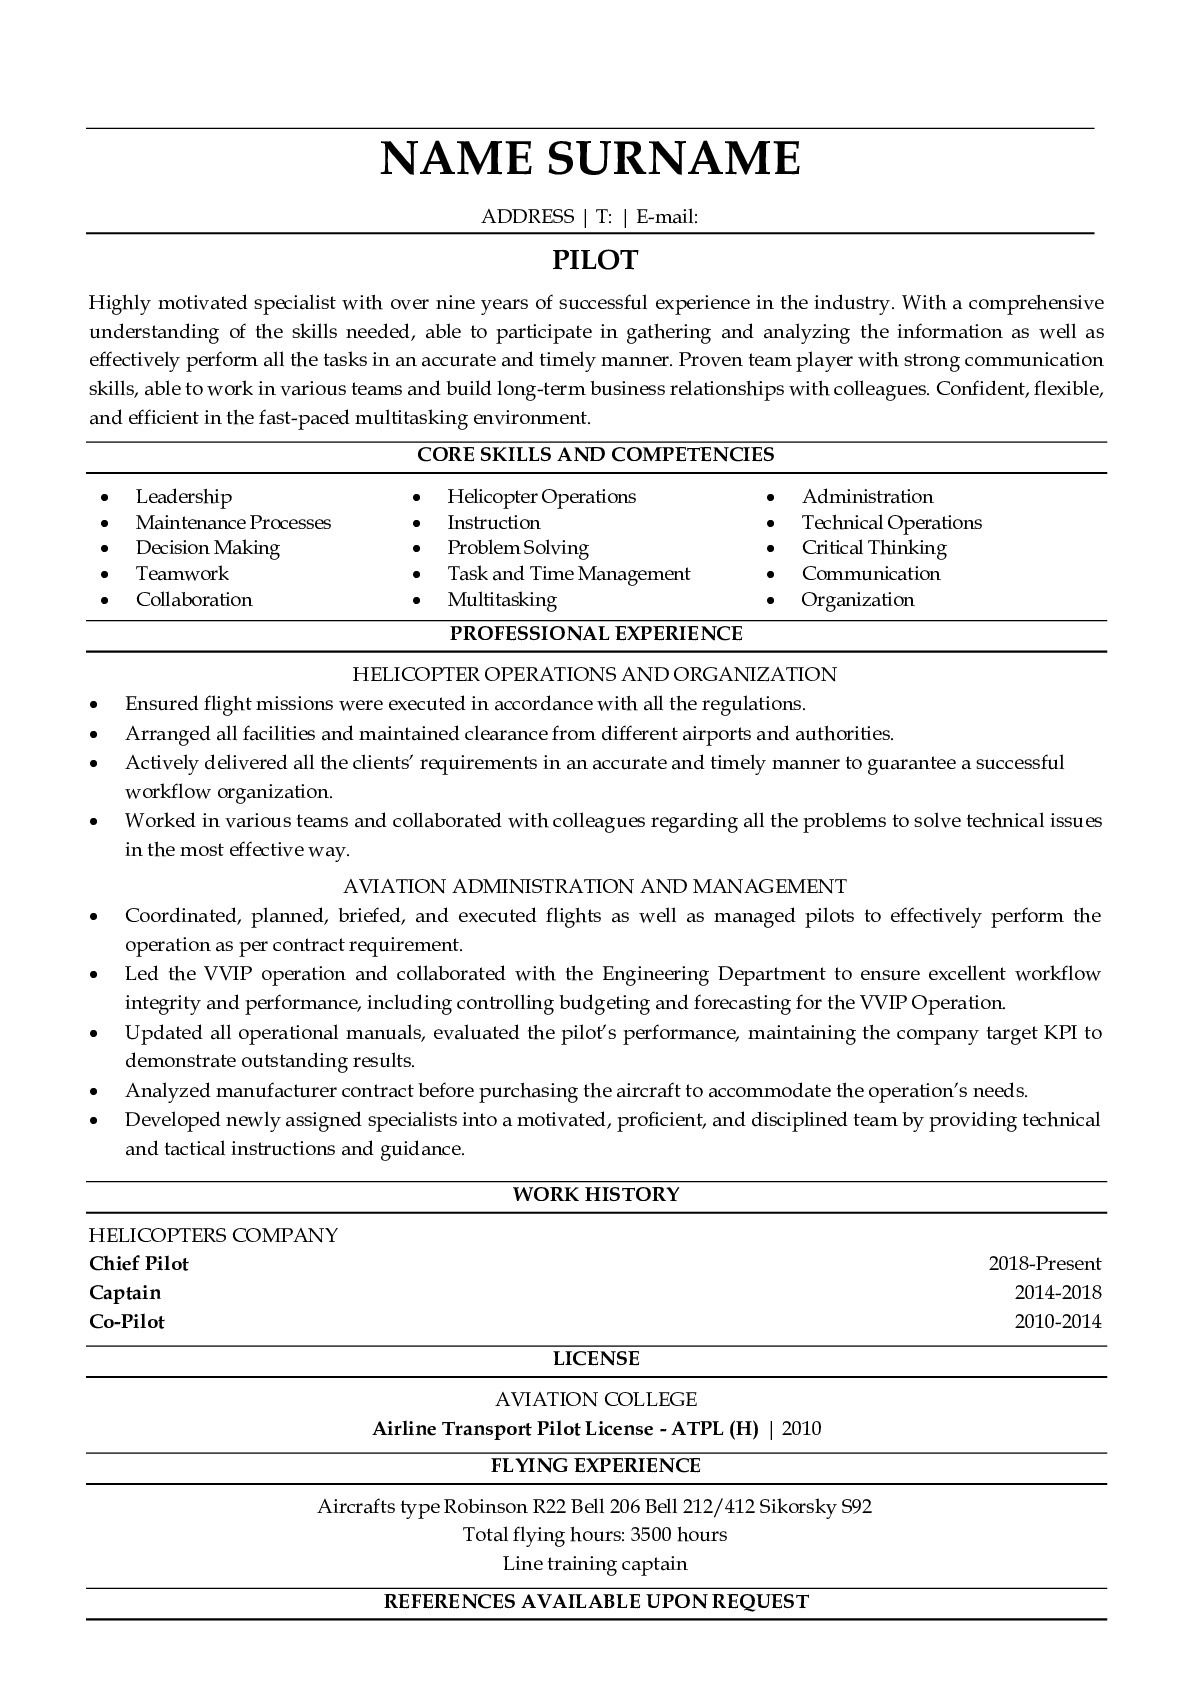 Resume Example for Pilot